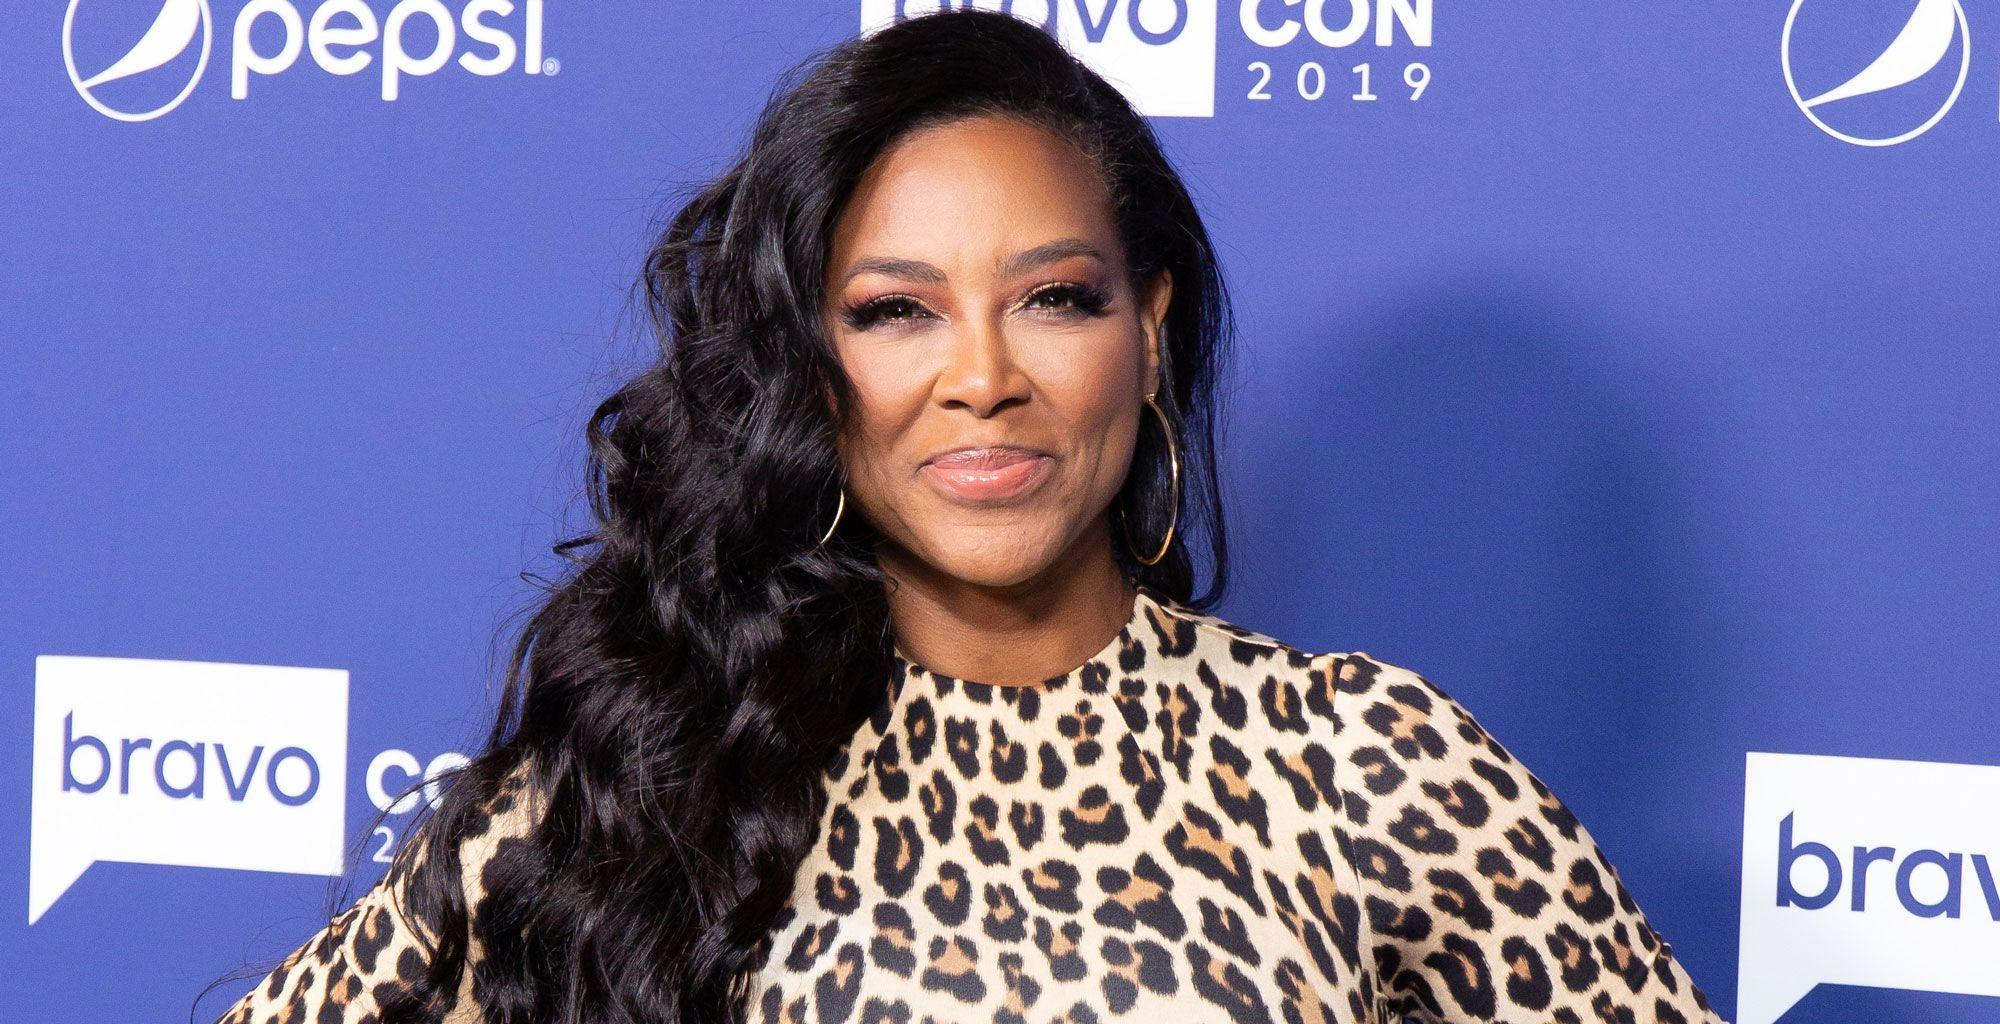 Kenya Moore's Spring Photo Has Fans In Awe - See Her Dress Here